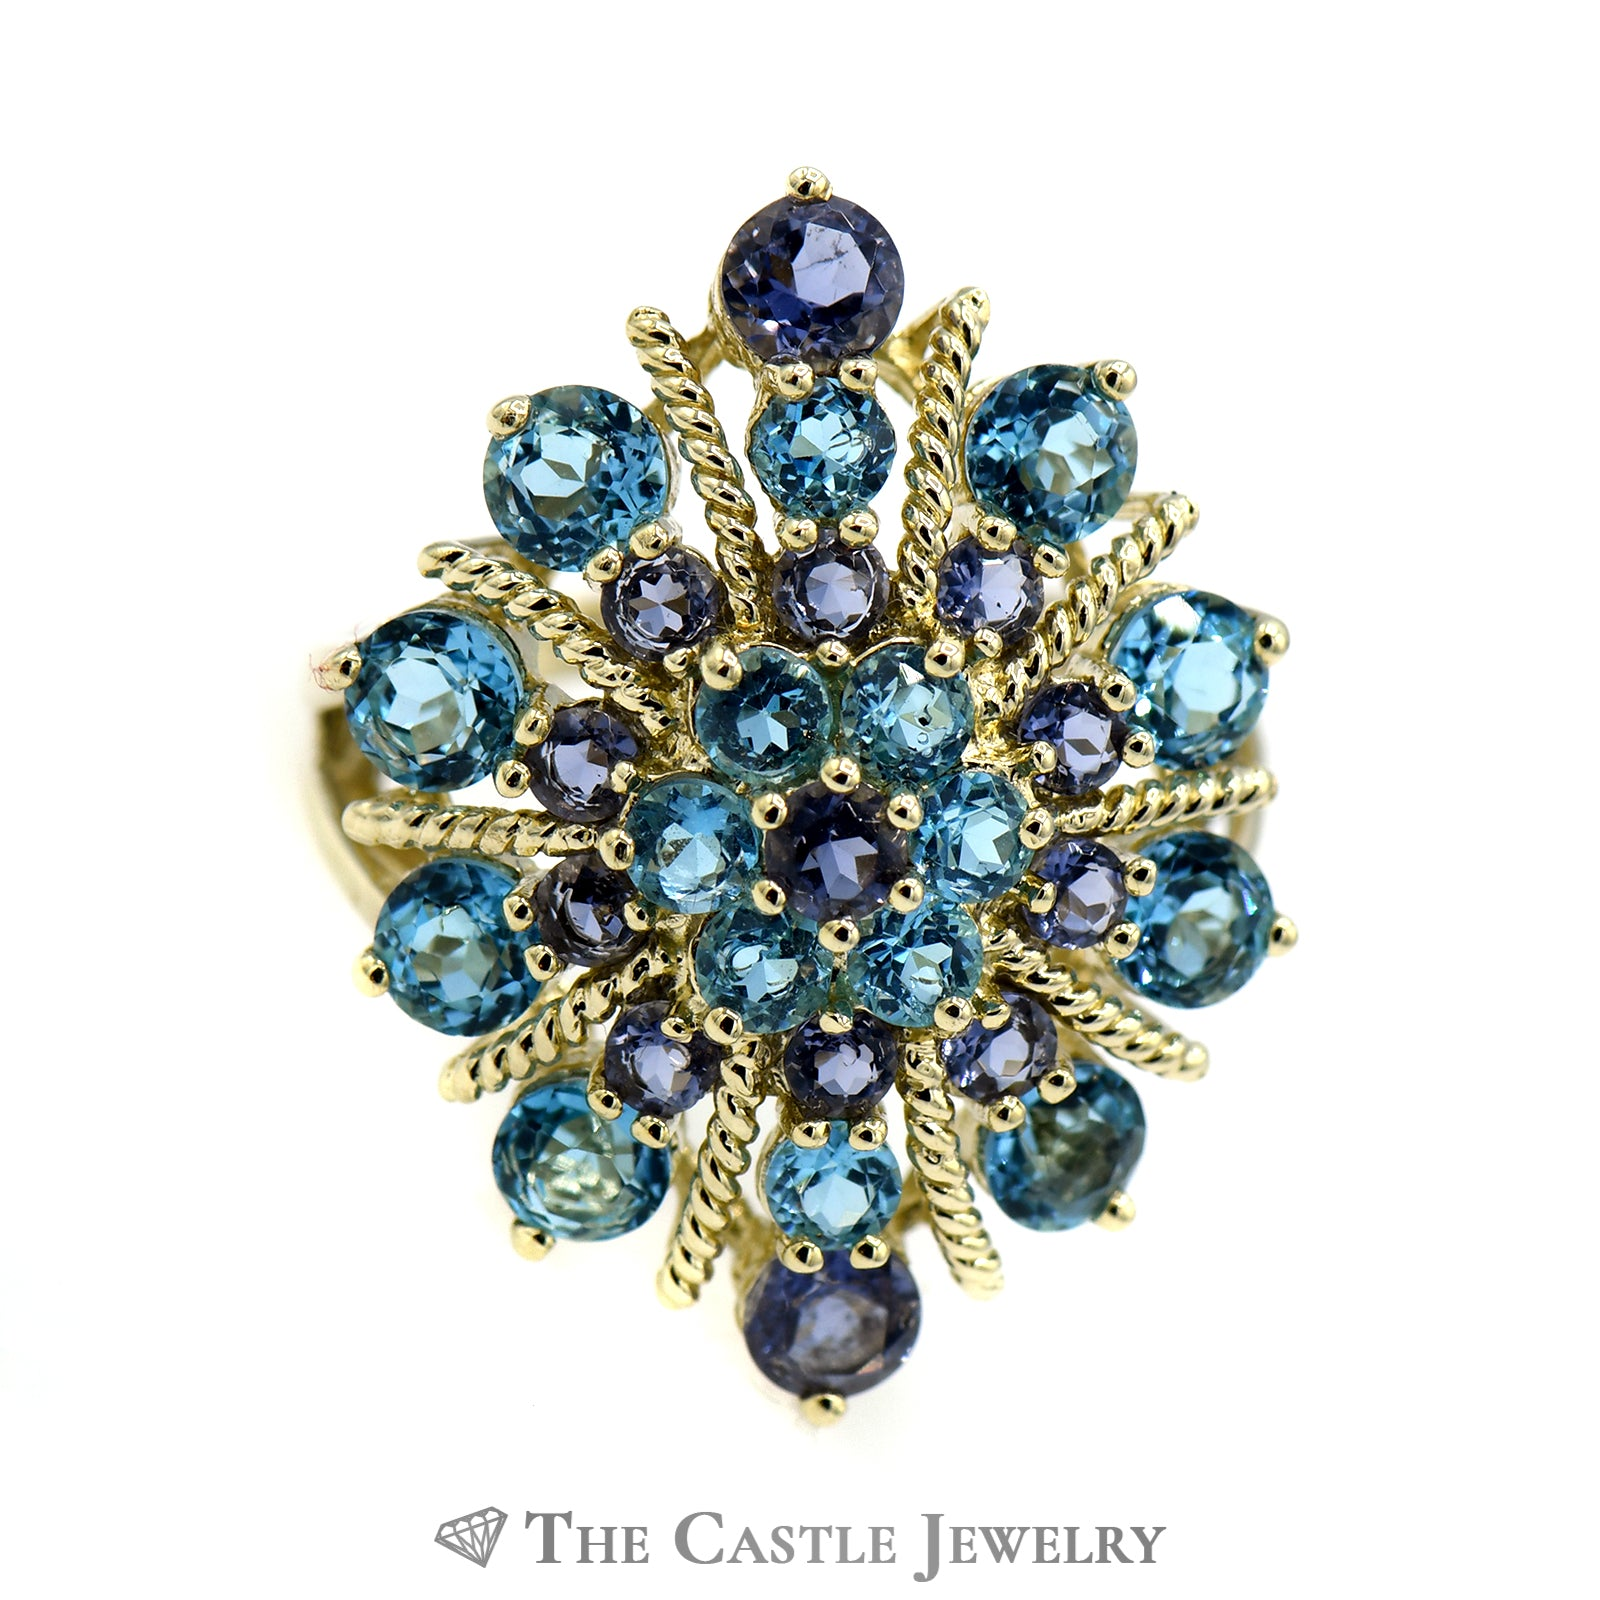 Tanzanite & Topaz Sparkler Ring with Twisted Gold Accents